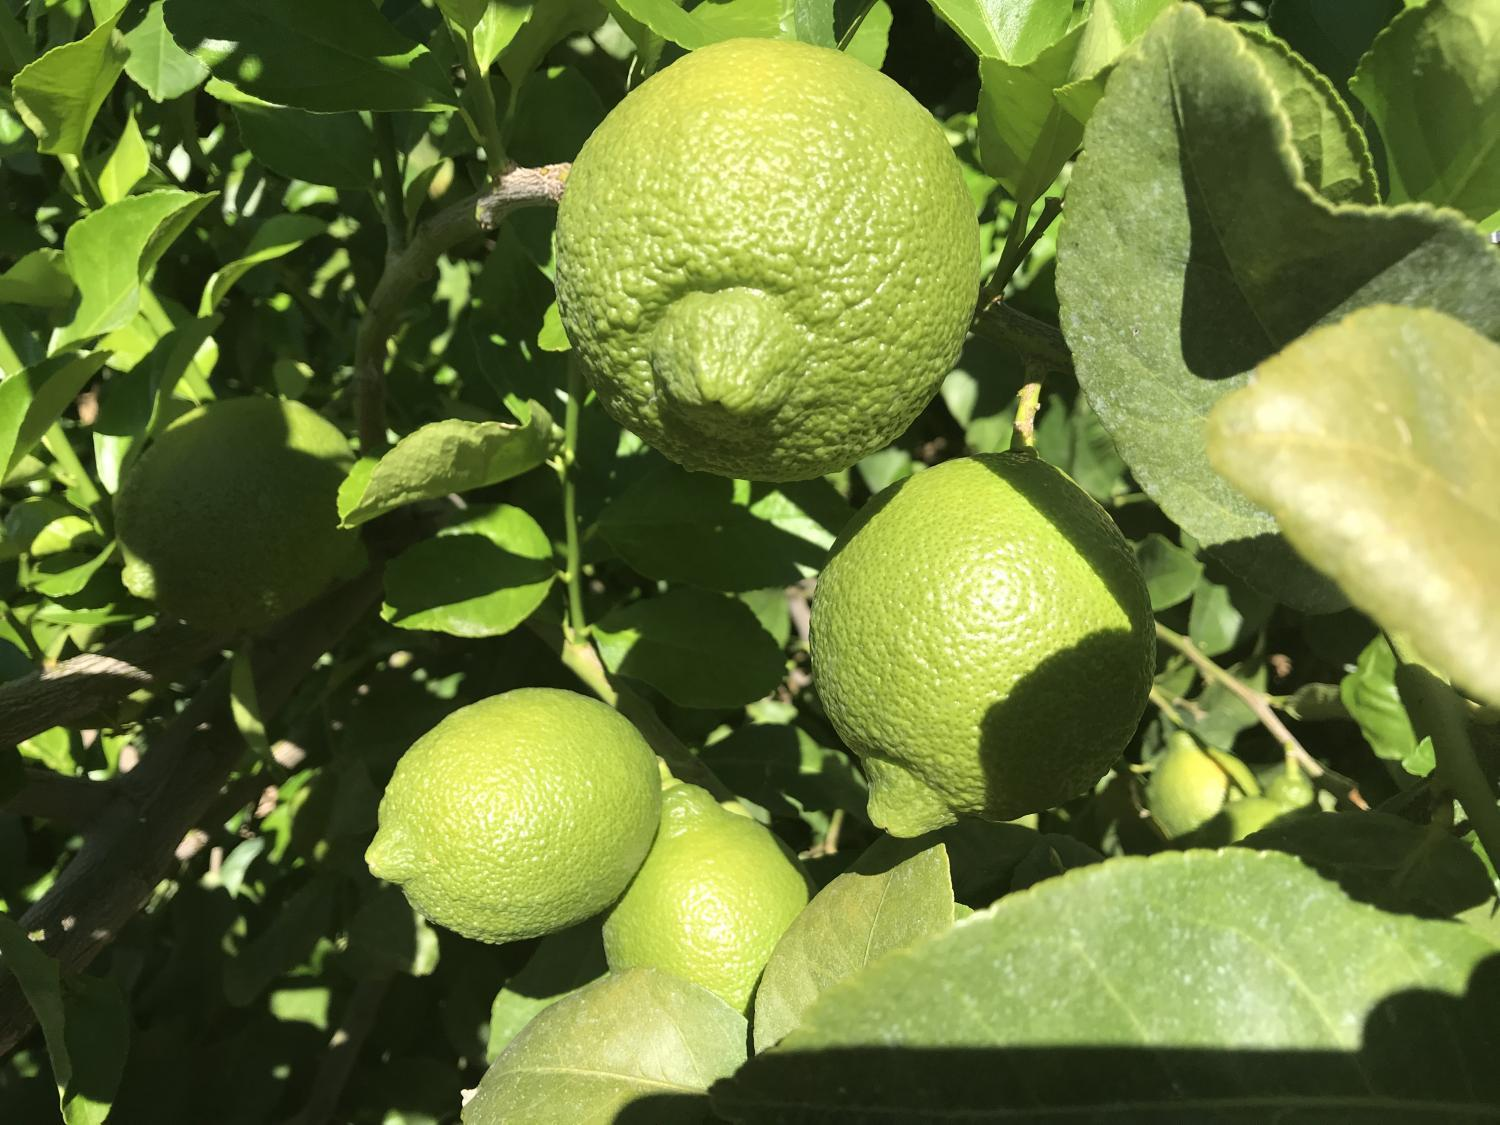 Lemons ripening on a tree in September 2018. Harvest season begins mid to late October.